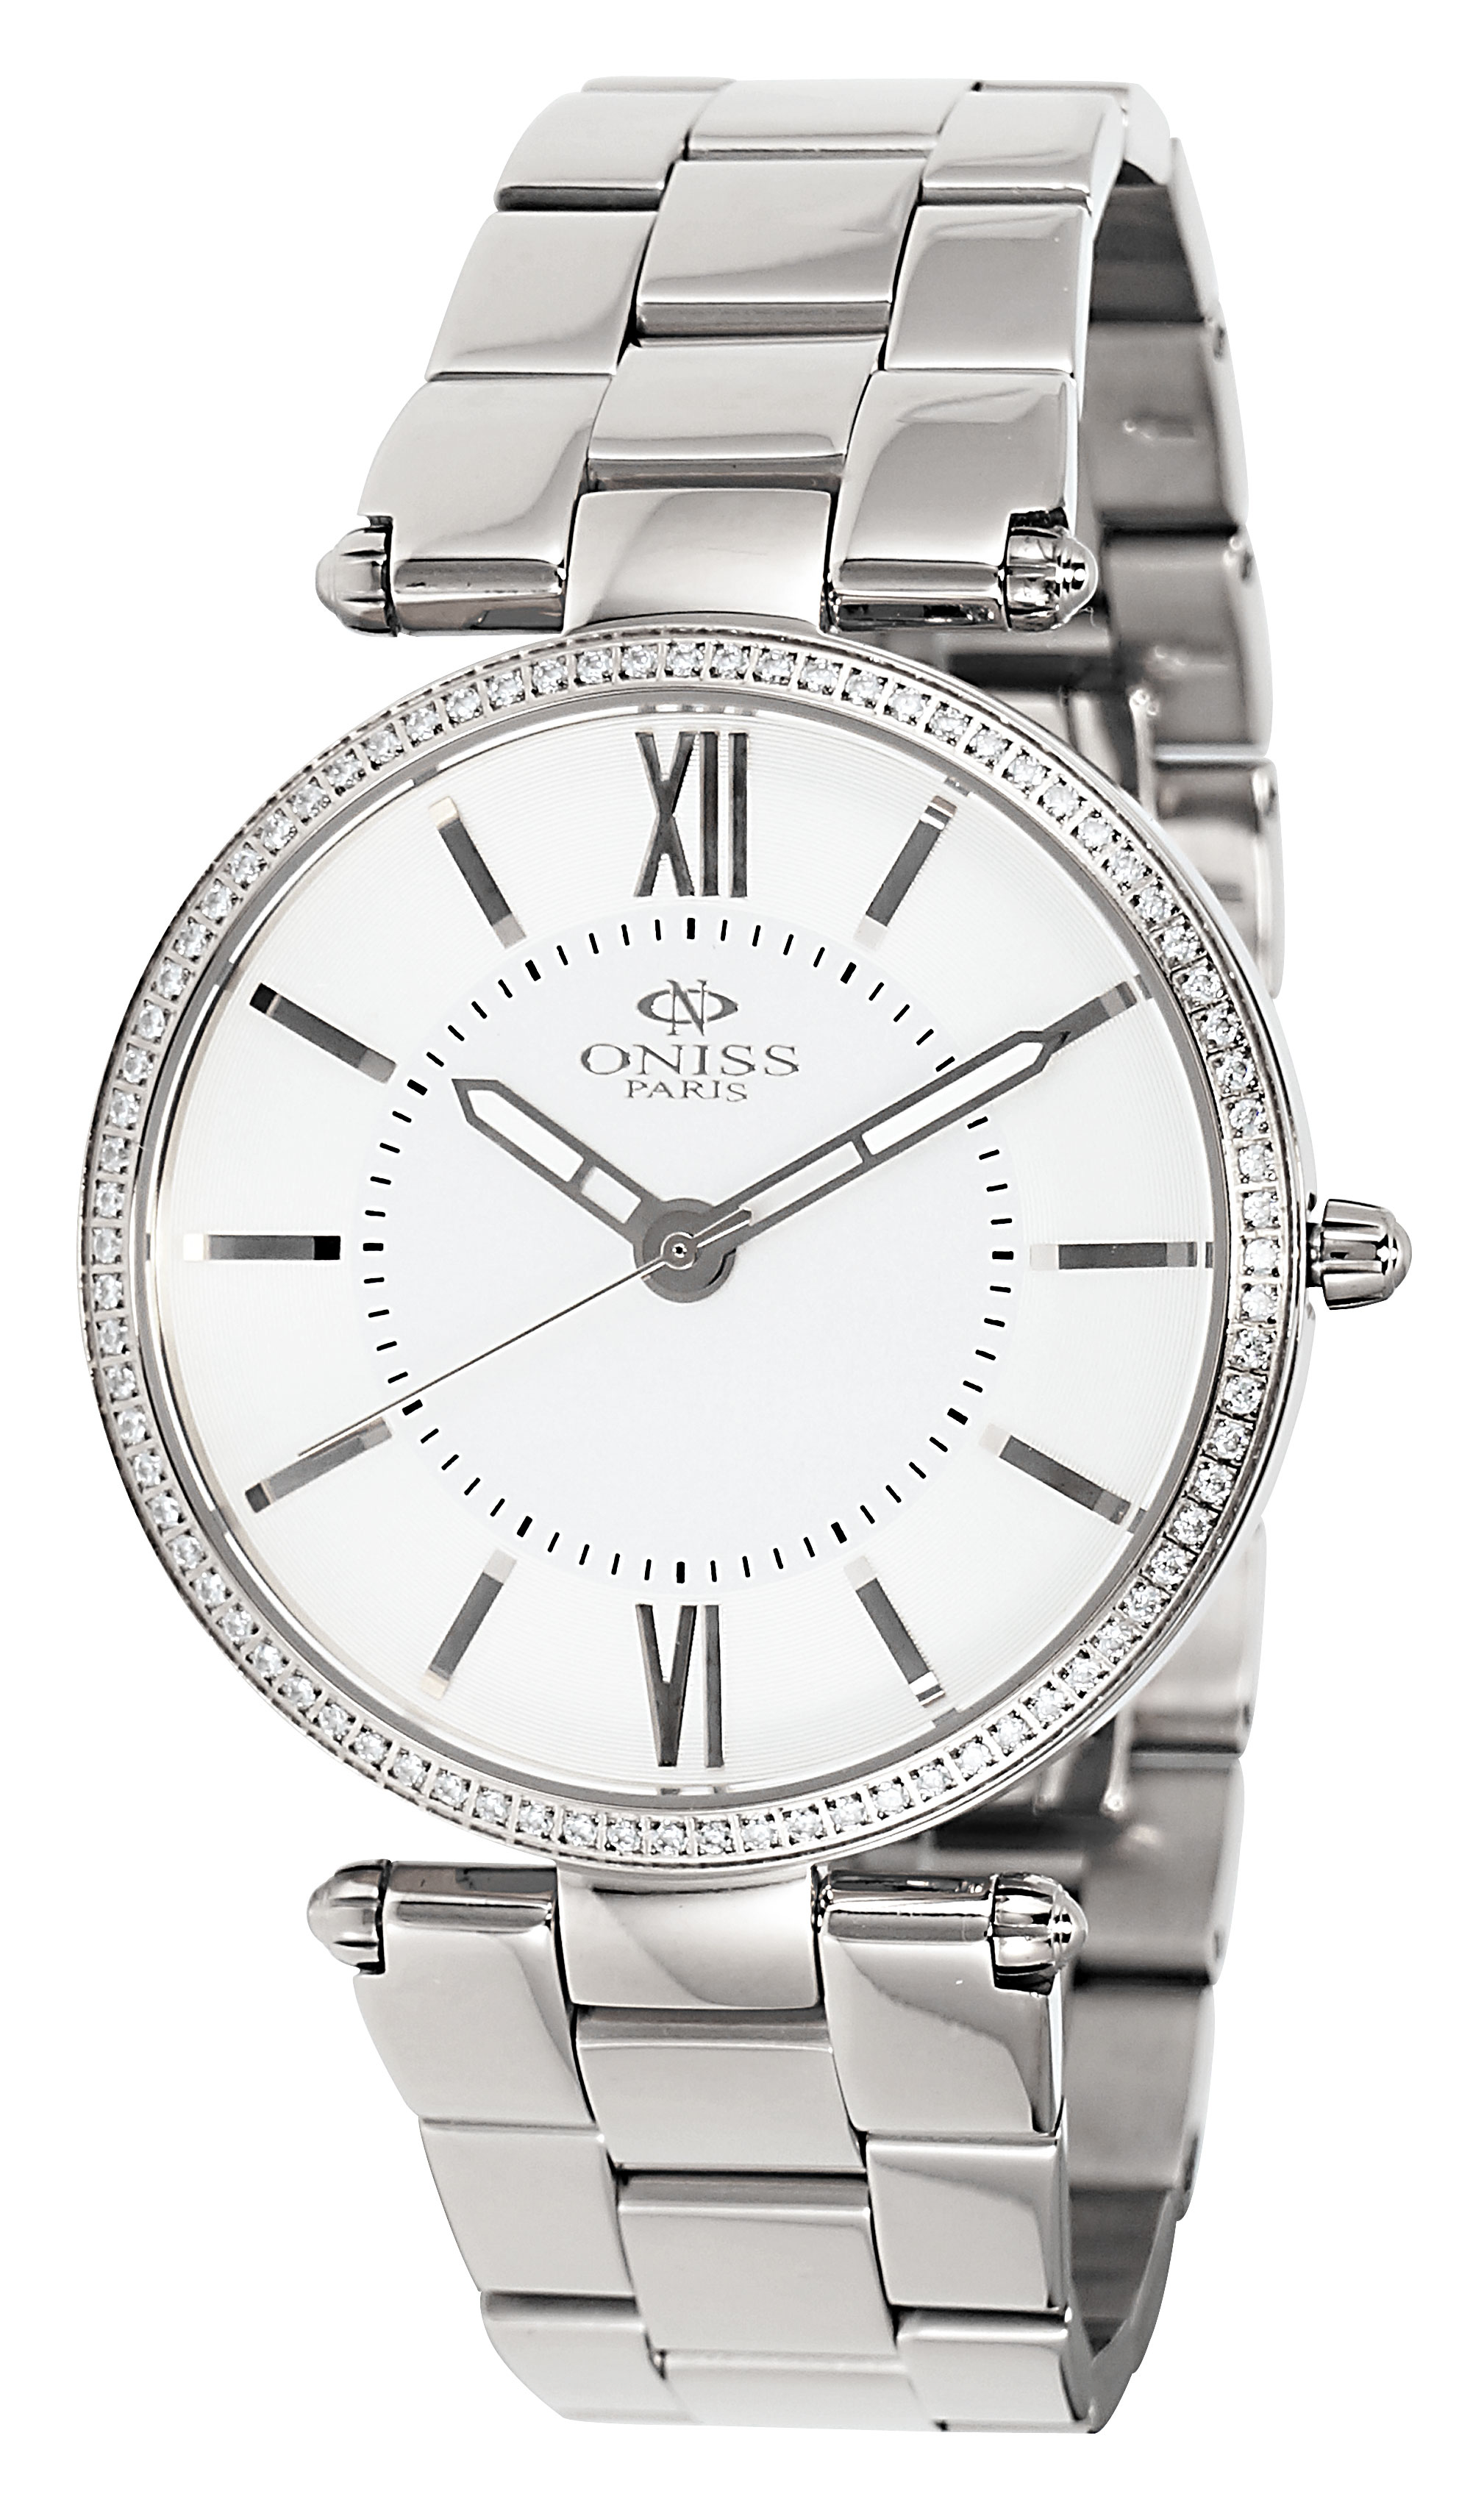 Oniss ON6021 Ladies Stainless Steel and Stone Watch-Silver tone/Black dial/White cz stones. at Sears.com